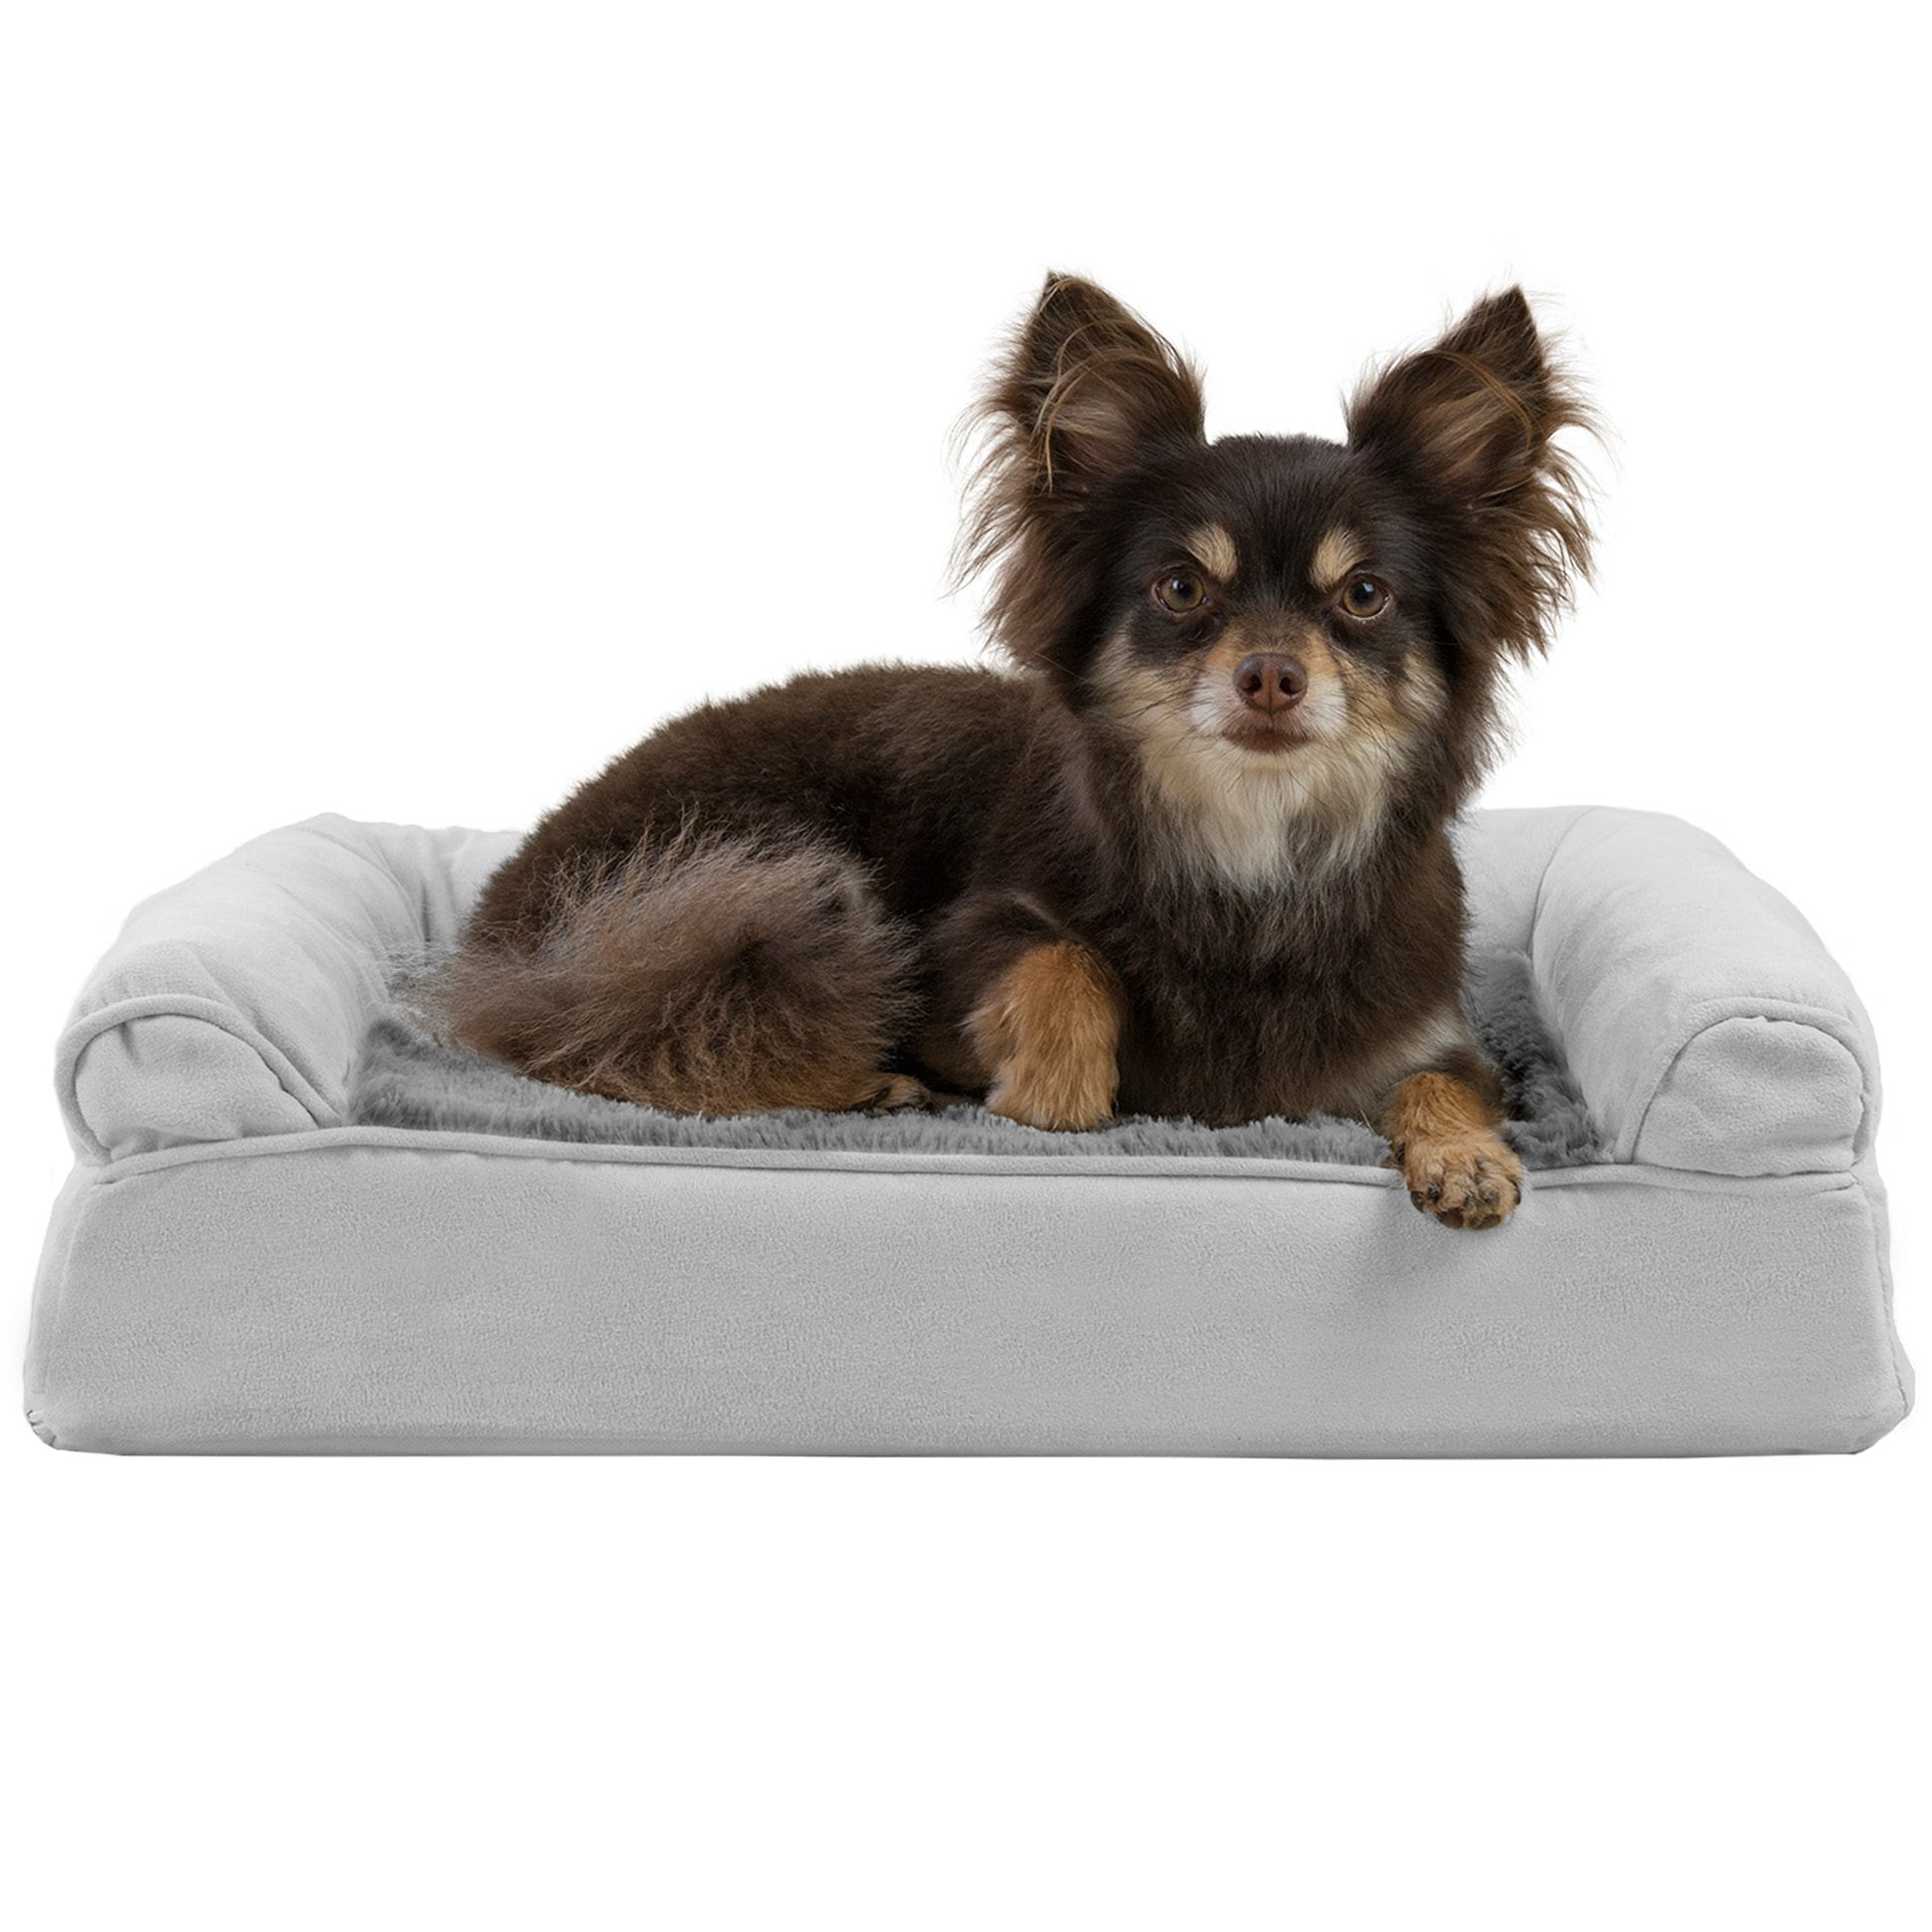 FurHaven Plush & Suede Memory Top Dog Couch Pet Bed (Larg.